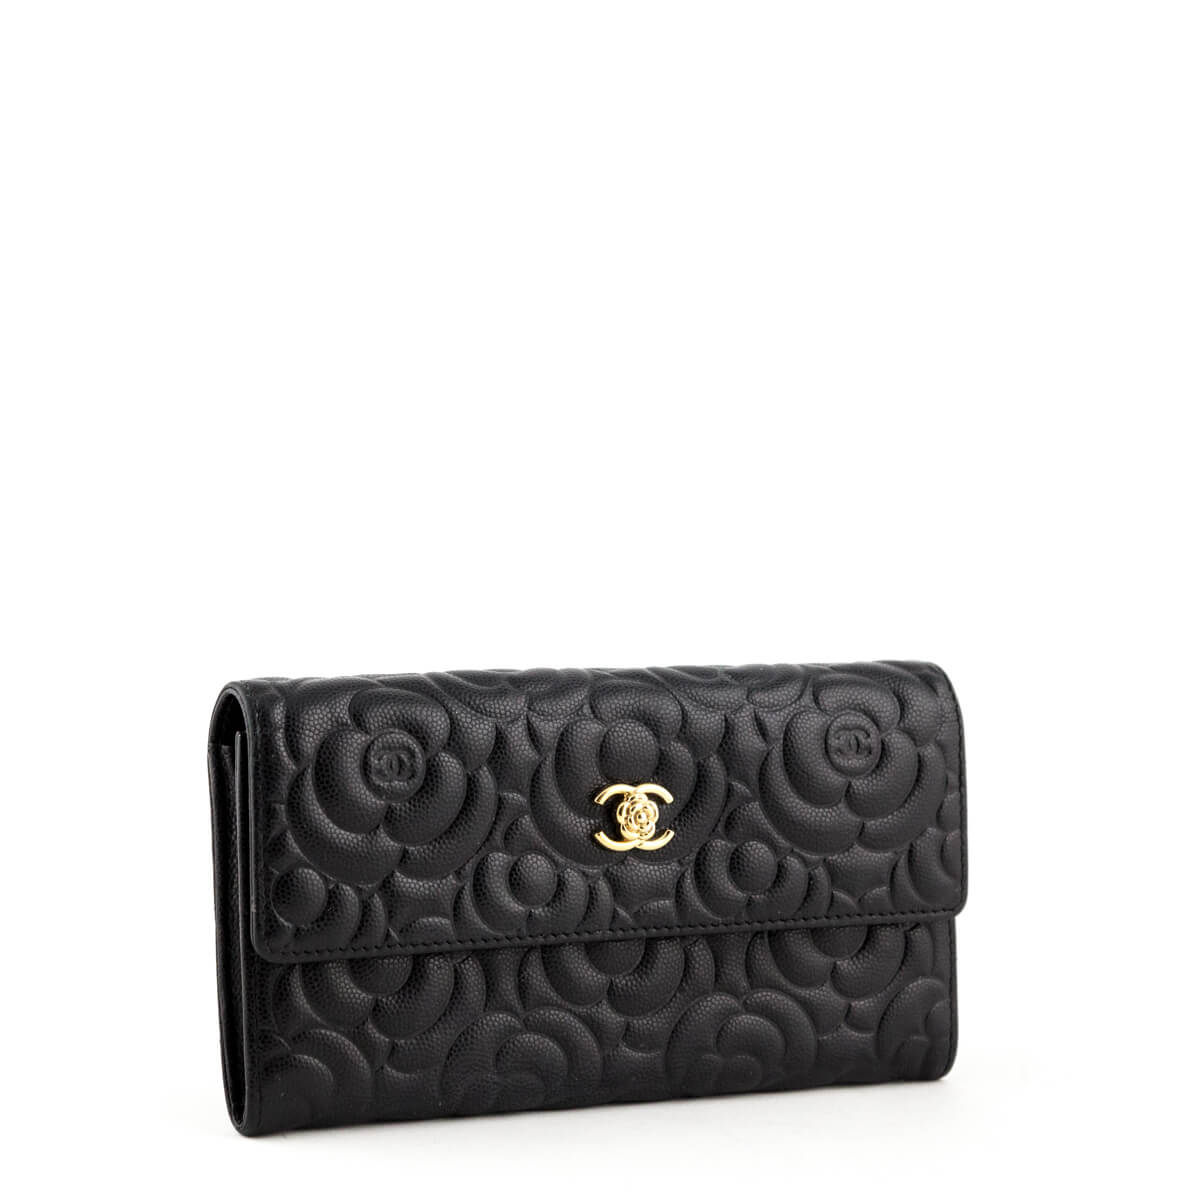 ... Chanel Black Caviar Camellia Embossed Flap Wallet - LOVE that BAG -  Preowned Authentic Designer Handbags ... 7ce1316a7268e